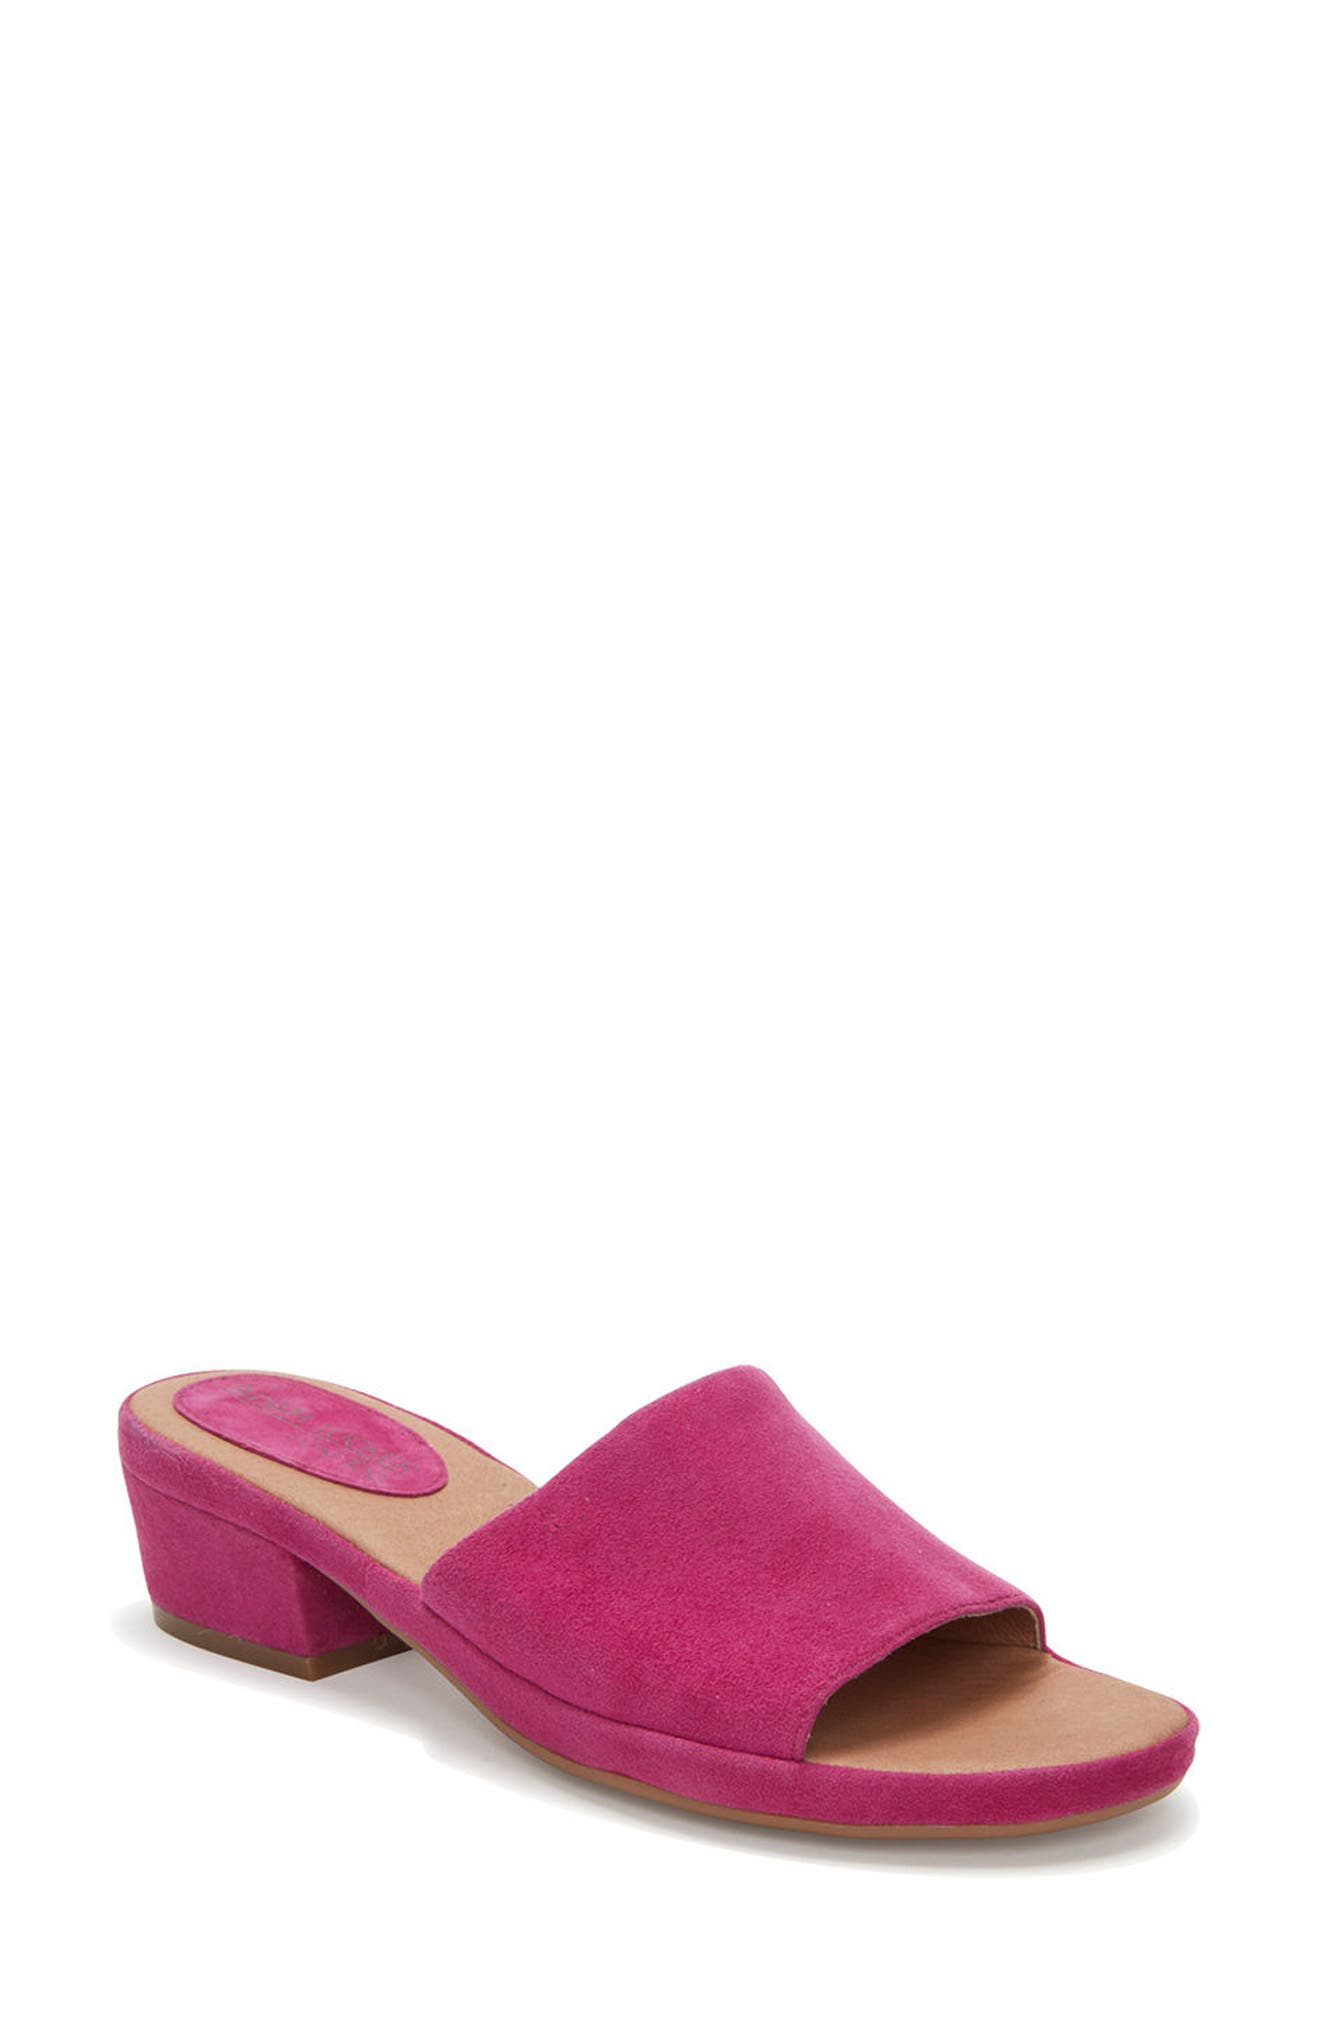 Adam Tucker Yolo Sandal,                         Main,                         color, Fuchsia Suede